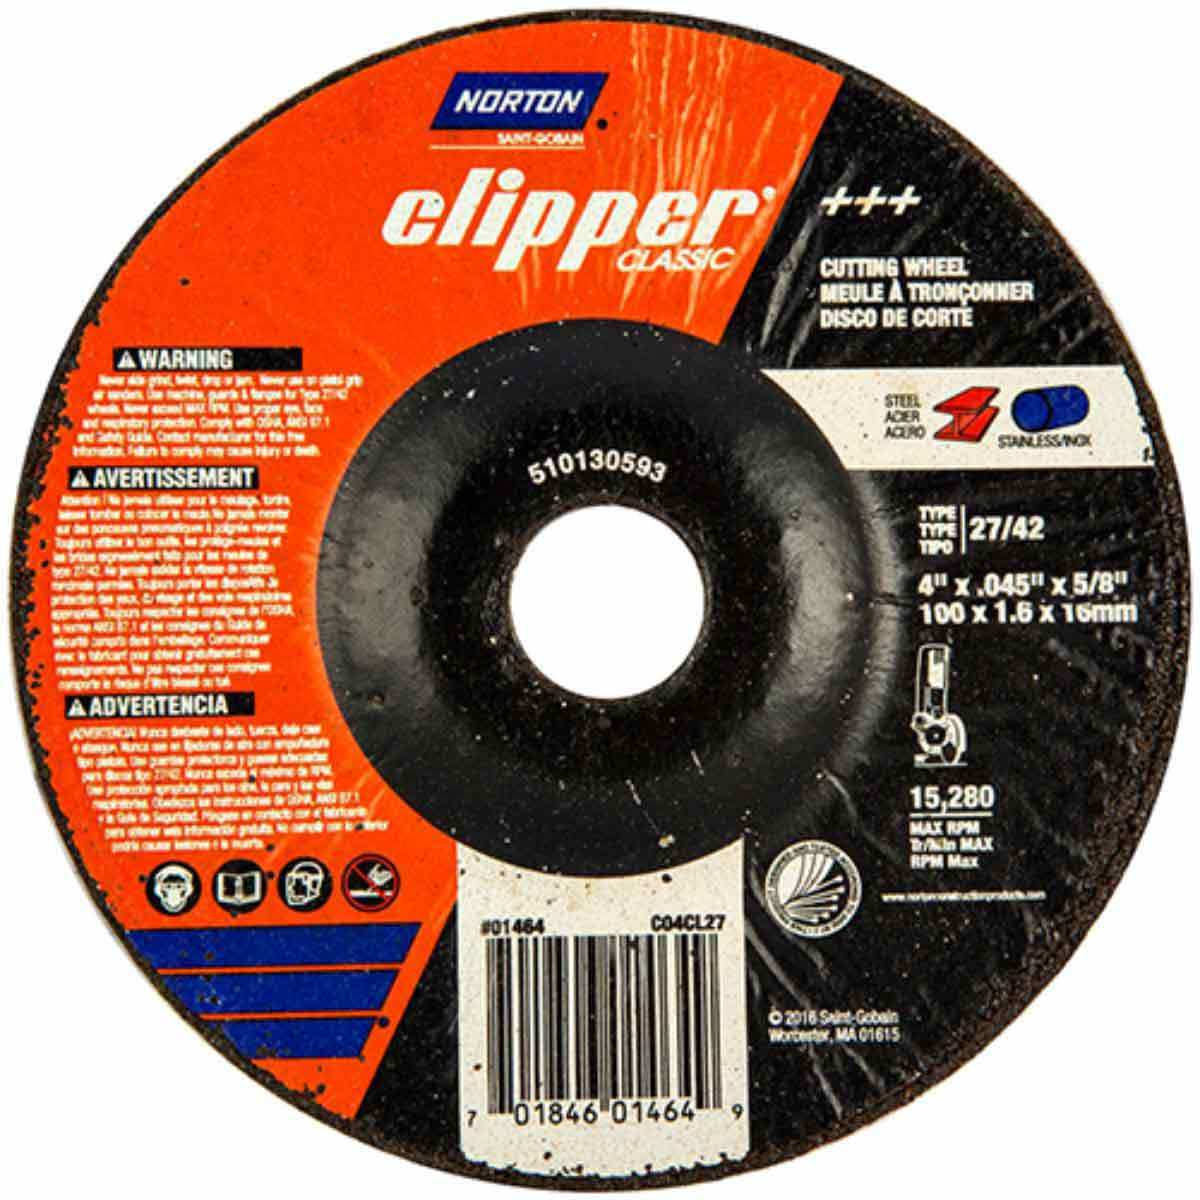 CO4CH27 Norton Classic Abrasive Type 27 Cut-off Wheels